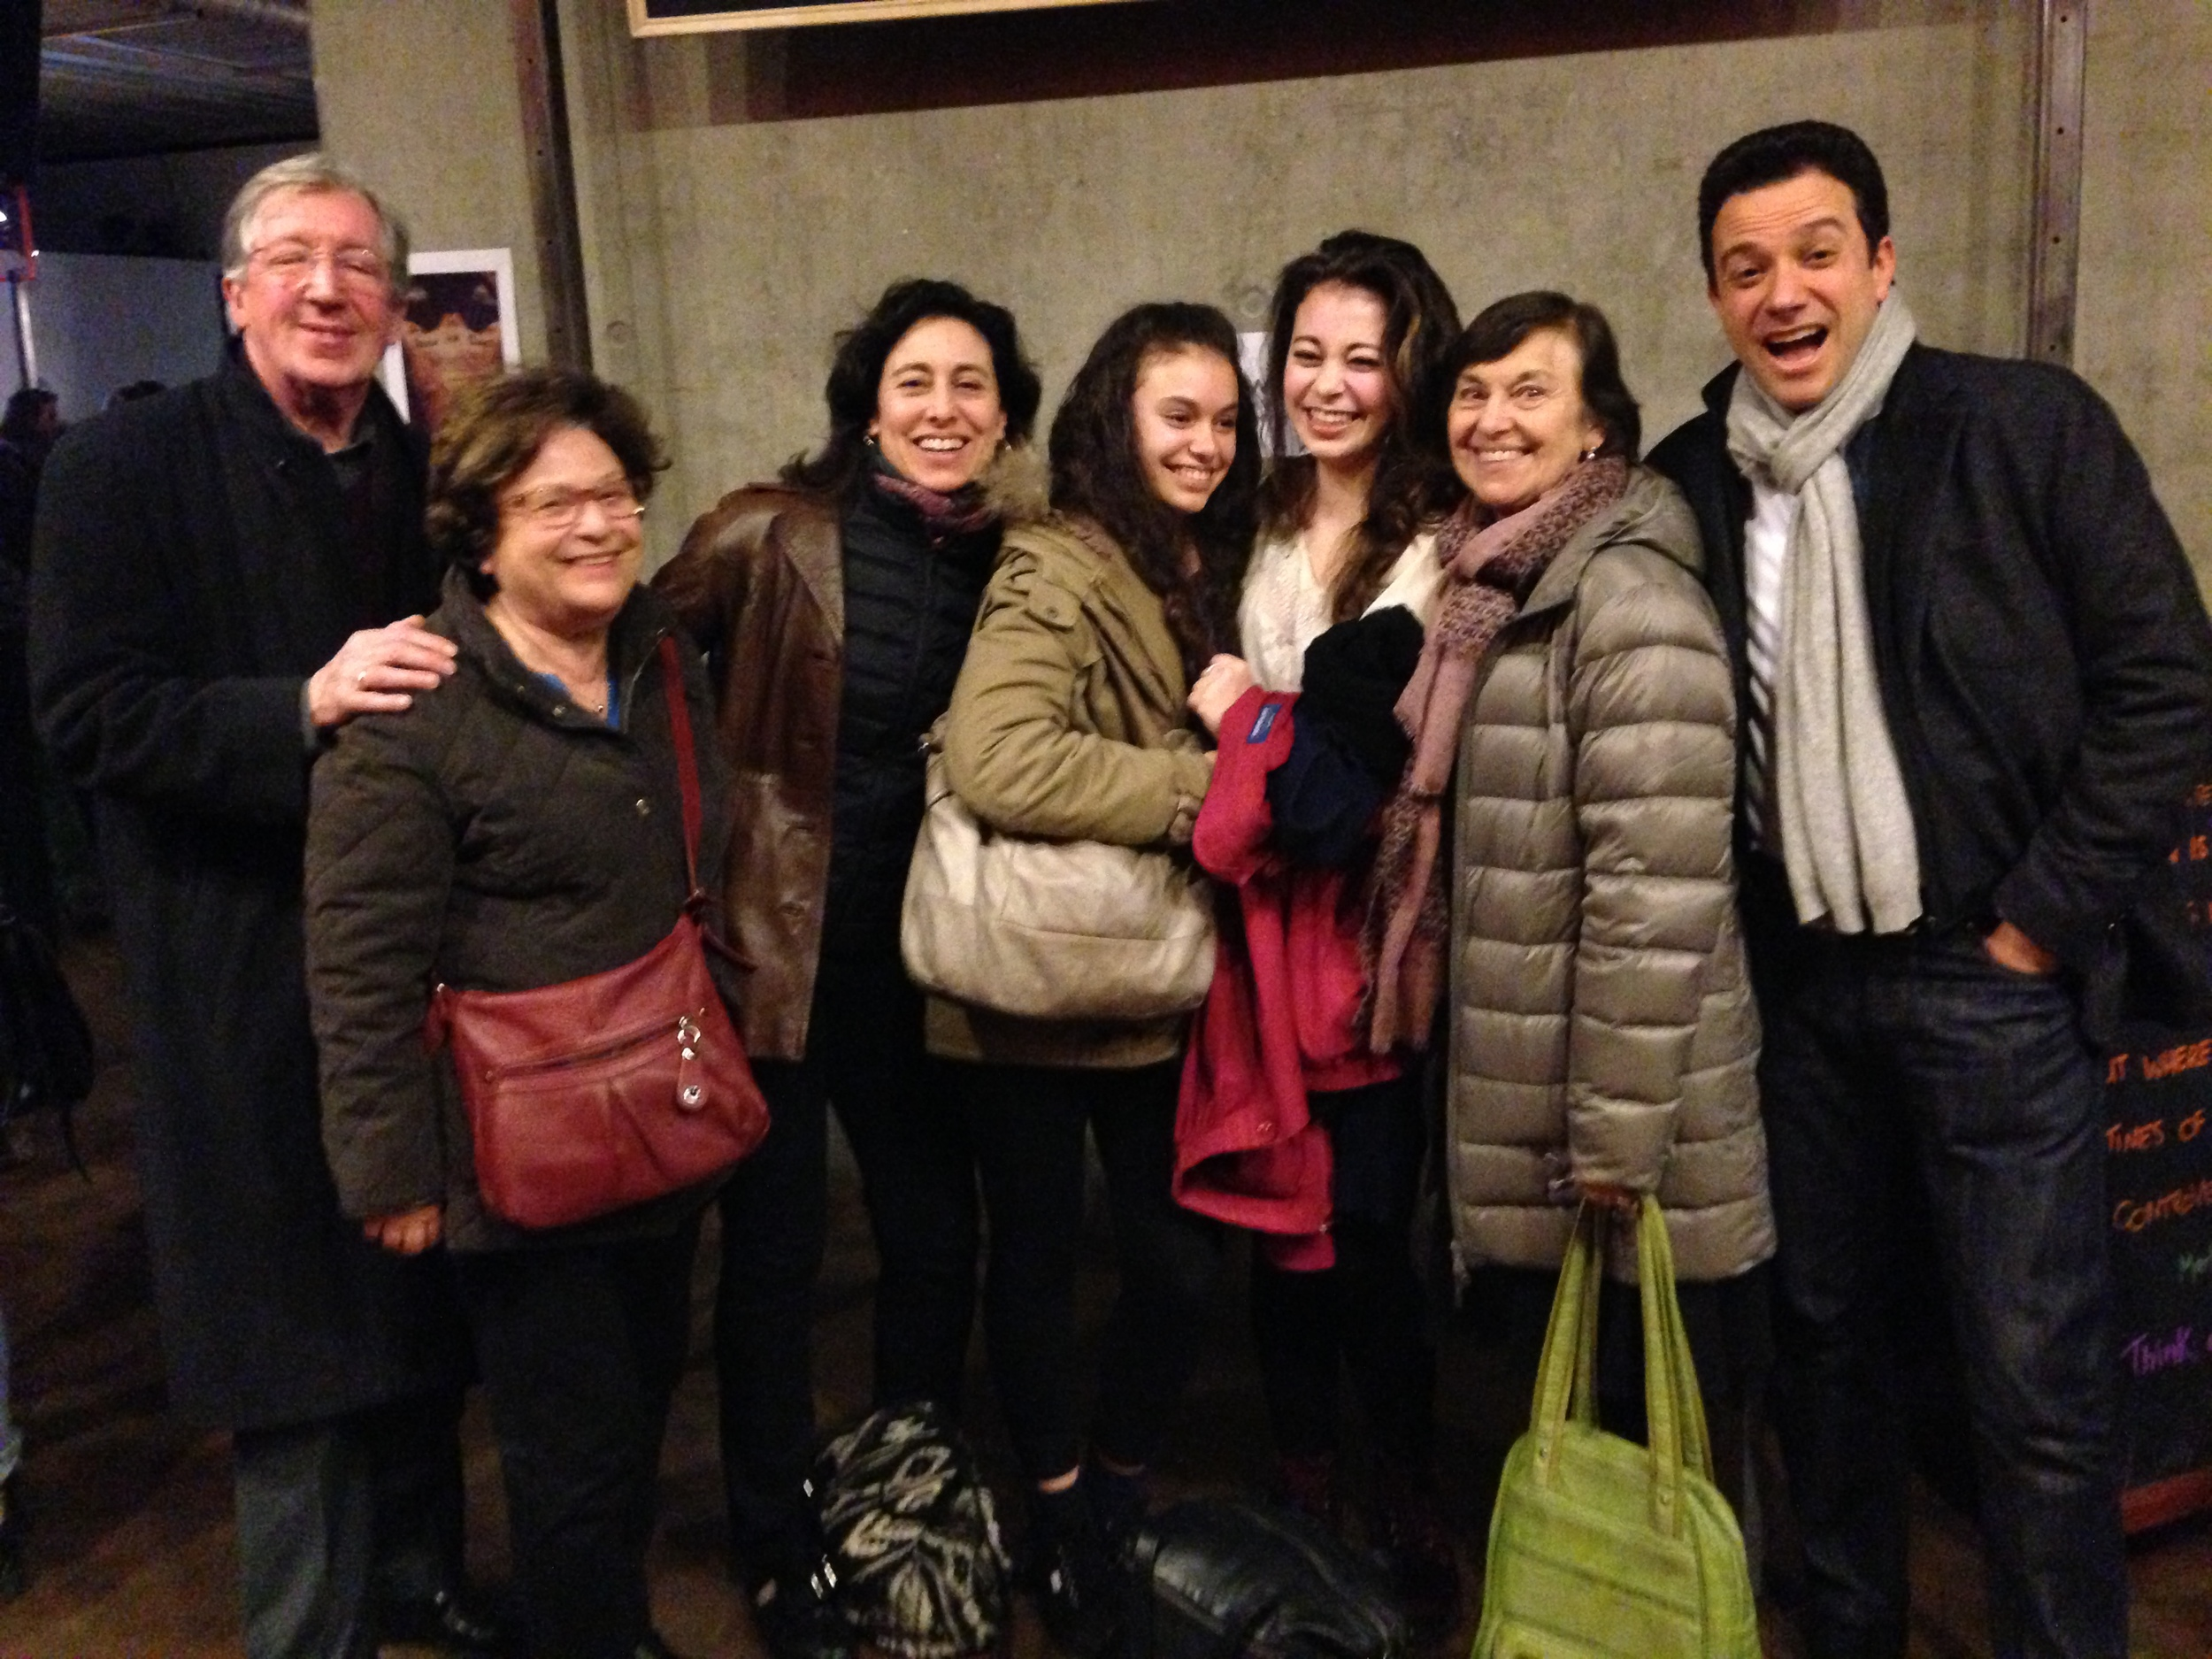 Sarah and her husband Alain with family and friends including daughters Ambre and Lara